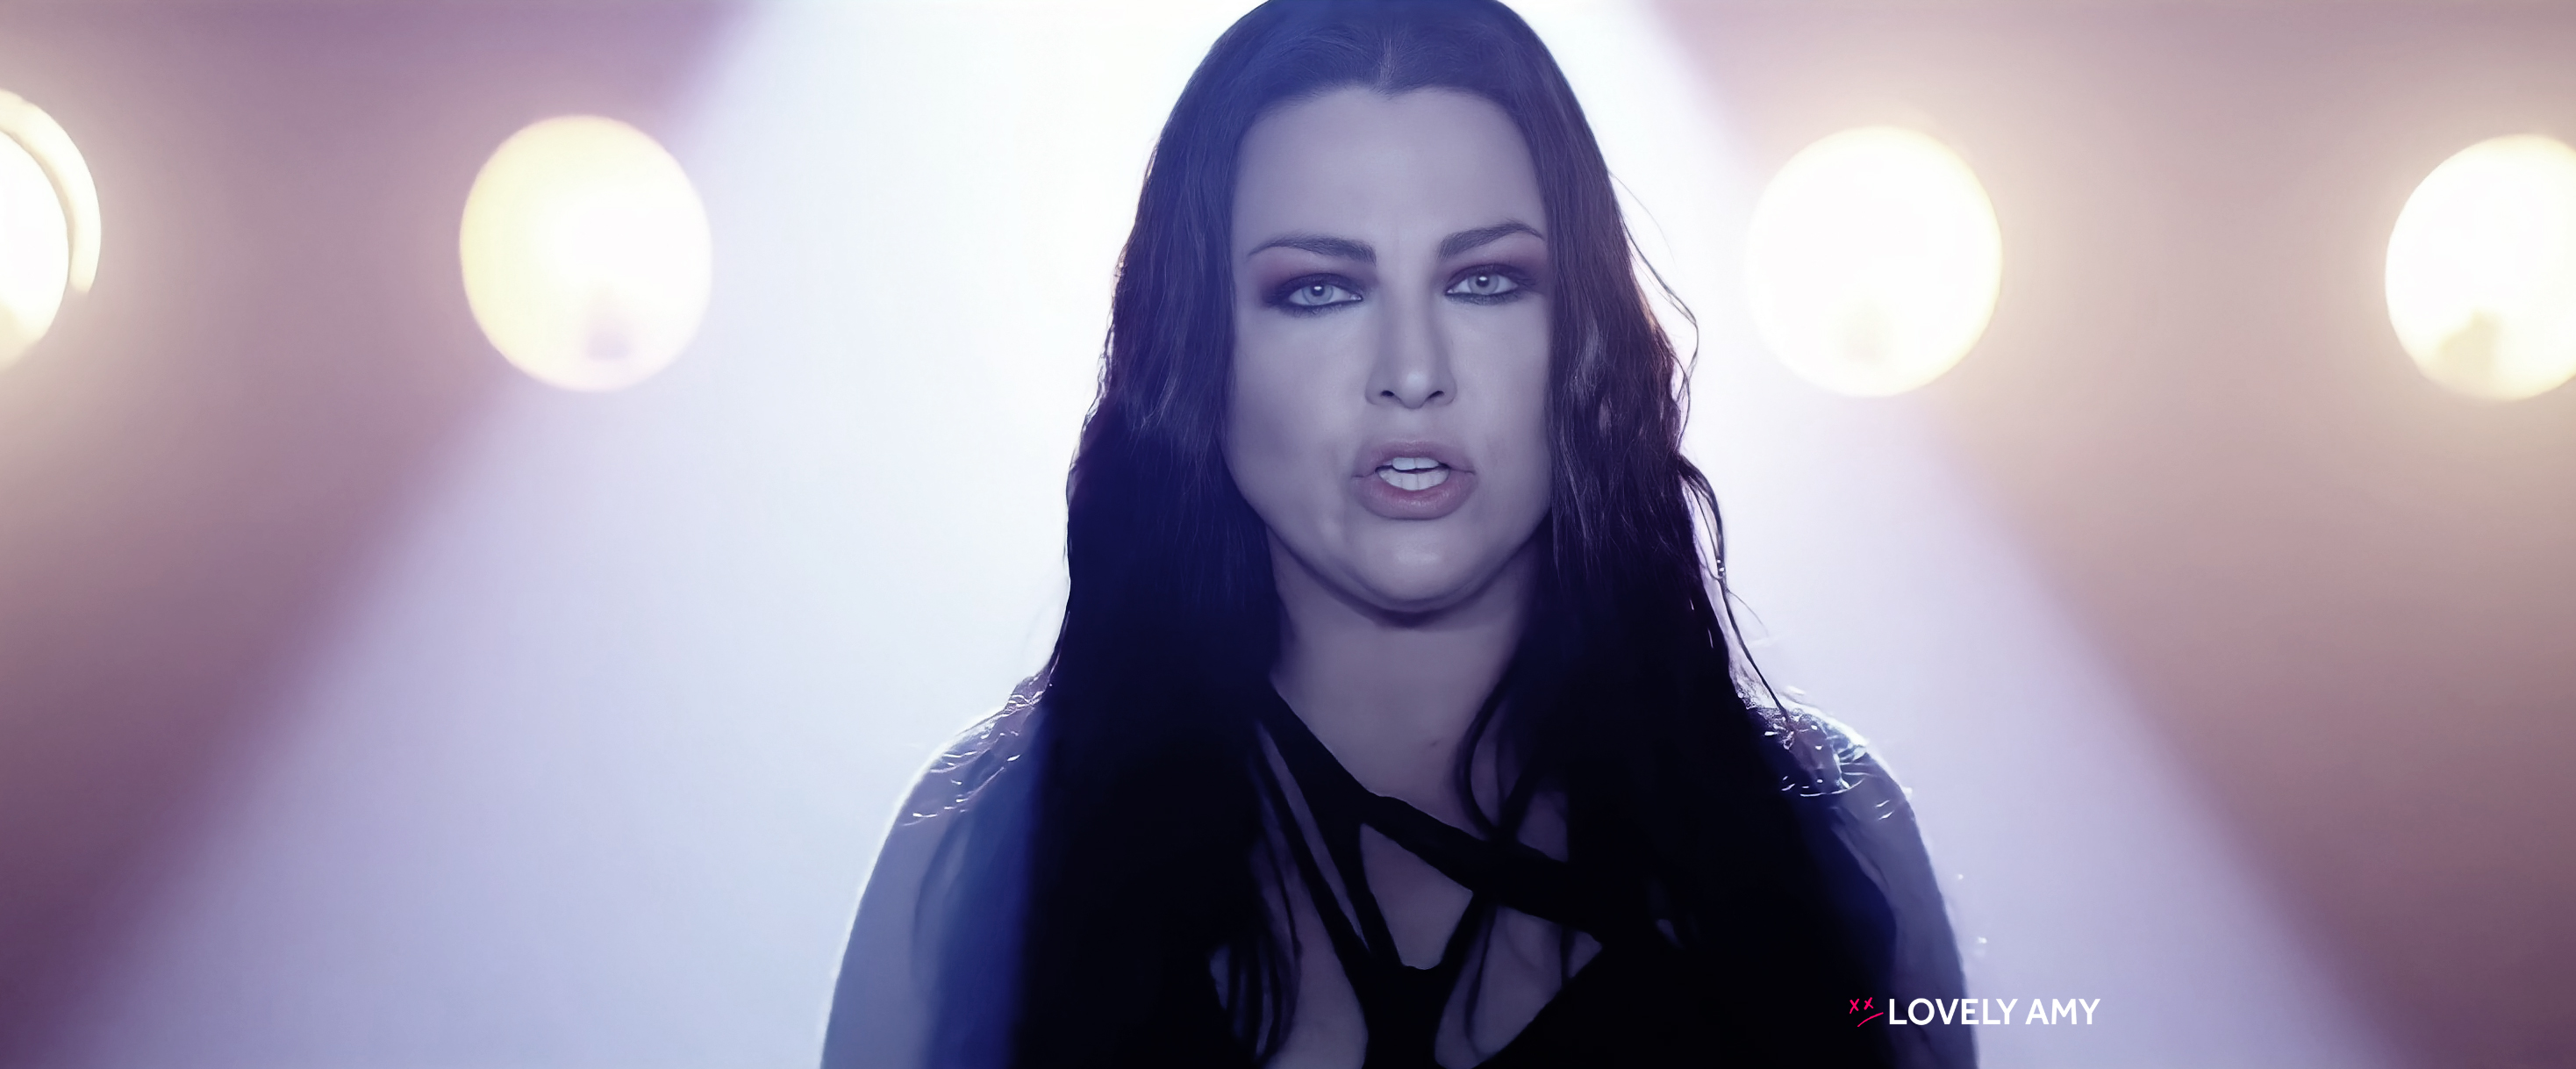 Evanescence Amy Lee - Better Without You Official Video HQ HD #Evanescence #AmyLee